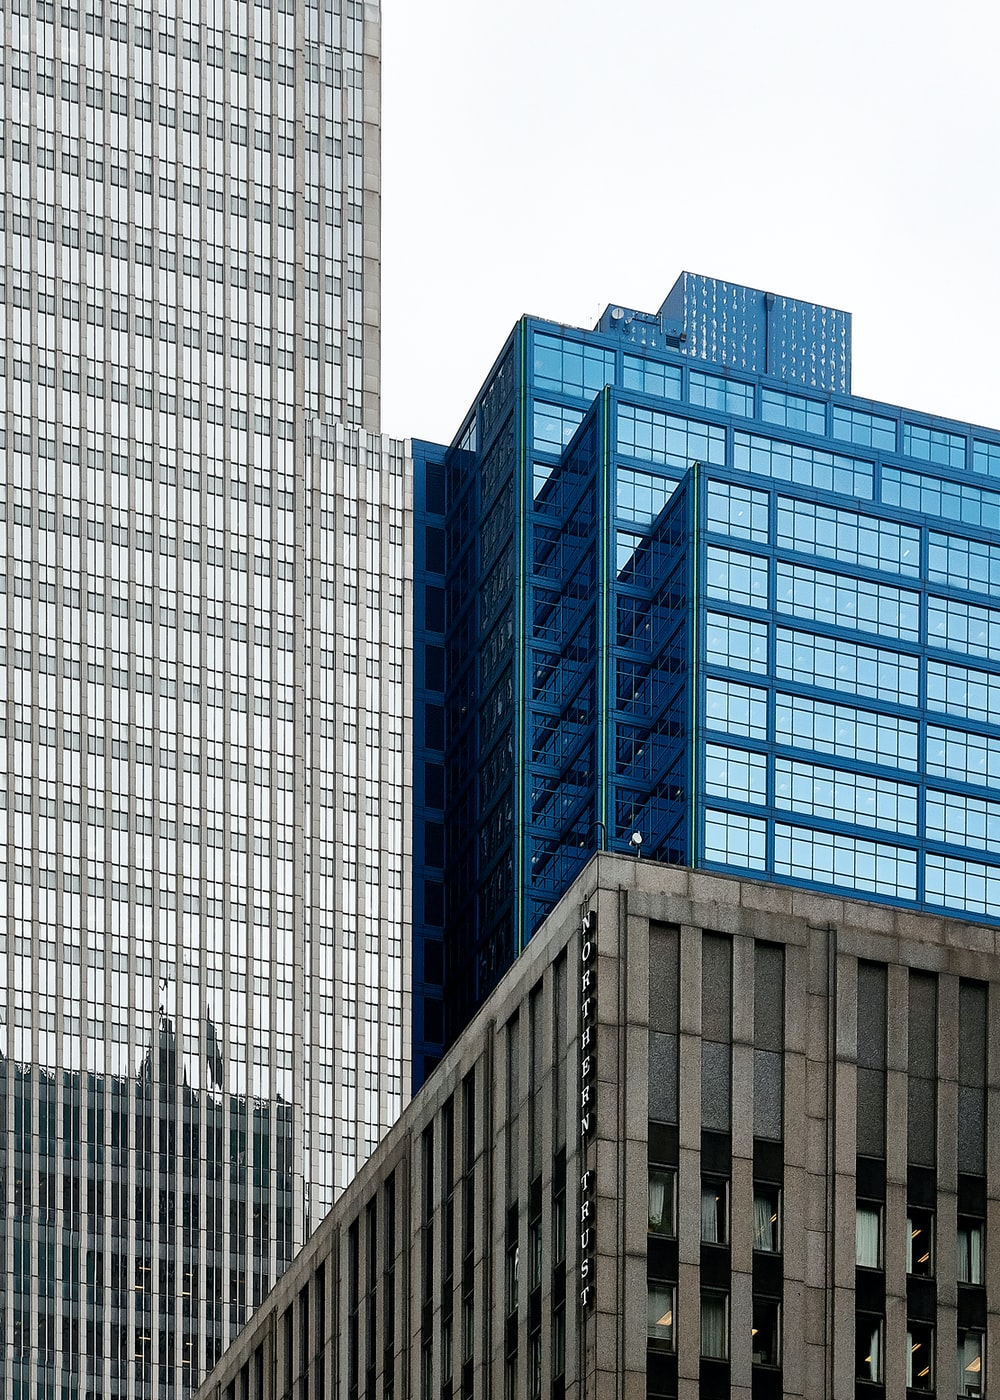 blue and gray high-rise buildings view